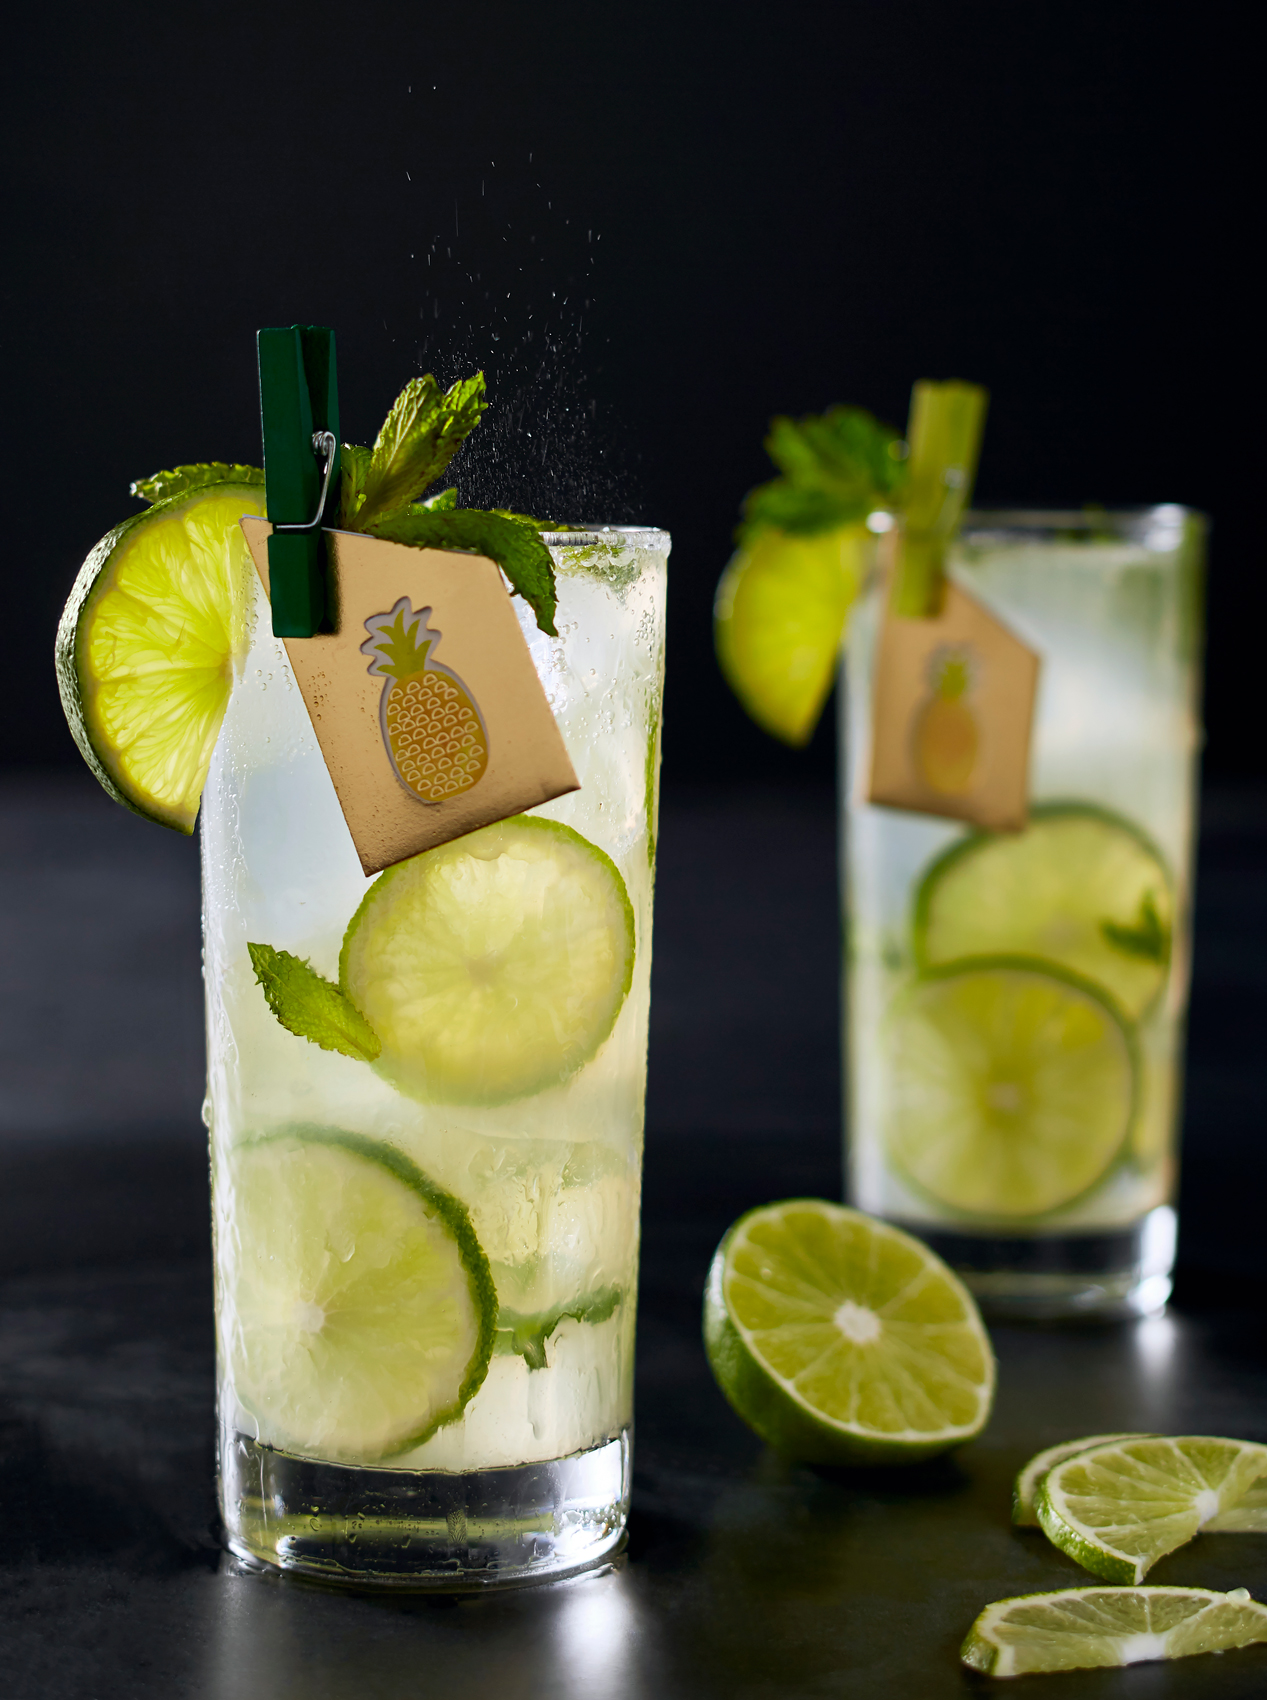 Ryan Dyer Photography | fruit cocktail for summertime